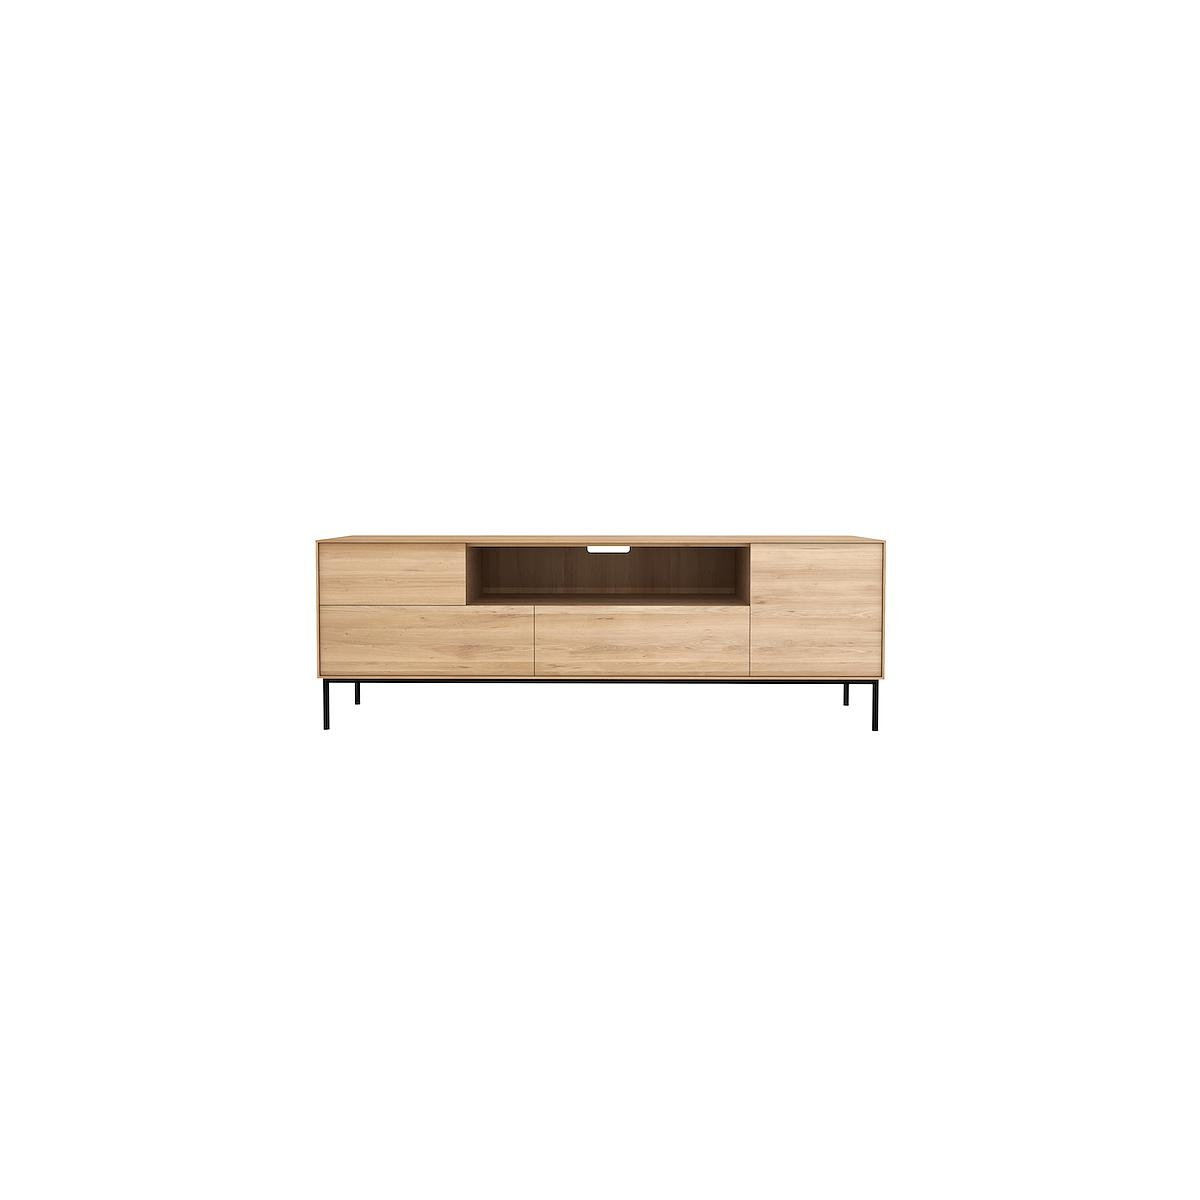 Meuble TV OAK WHITEBIRD Ethnicraft